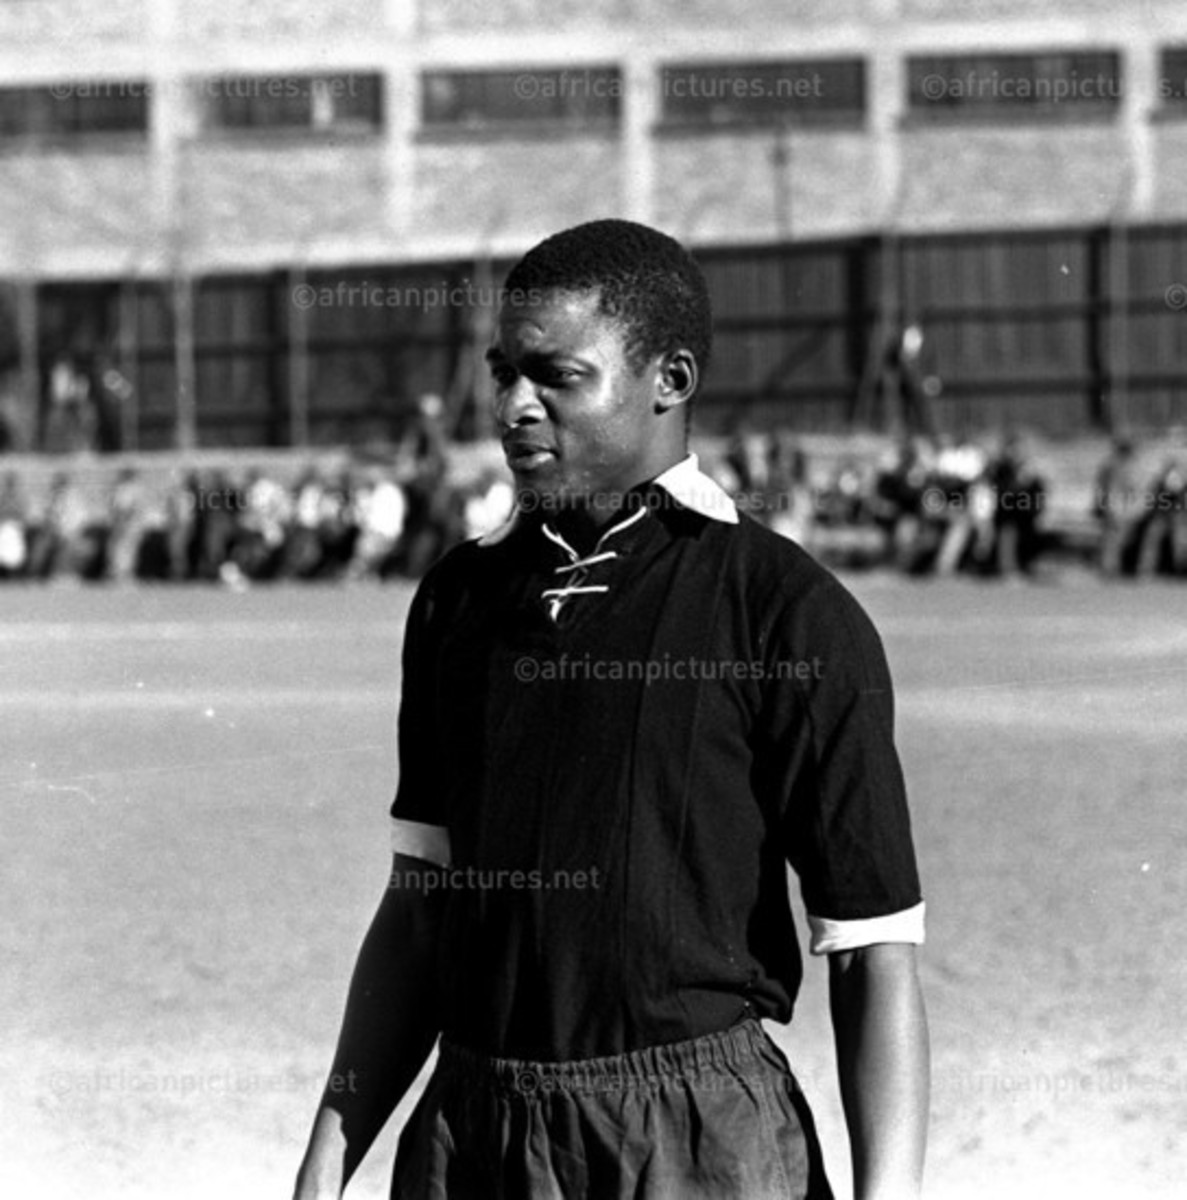 The Man Who Helped Build Pirates and The Legendary Scara Sono in BUCS uniform-He was Also the Father of Jomo Sono